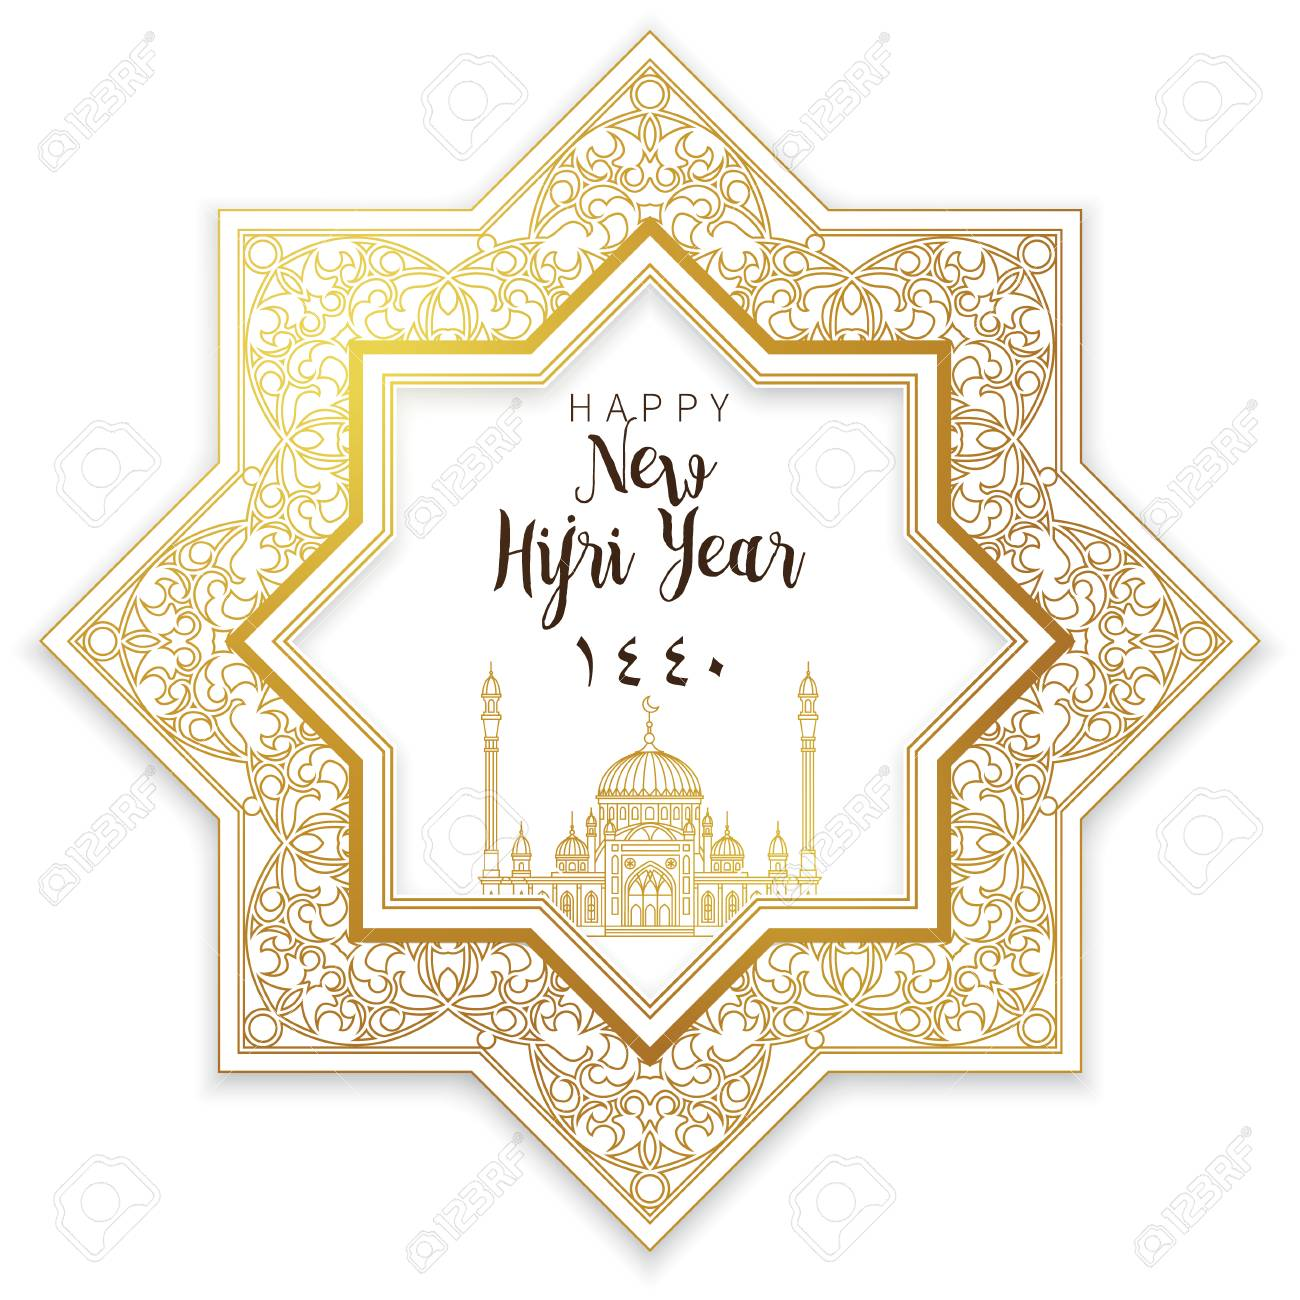 Vector holiday Happy New Hijri Year 1440. Card with calligraphy, floral frame, moon for muslim celebration. Islamic greeting illustration for gift certificates, banners. Golden decor in Eastern style. - 105378000